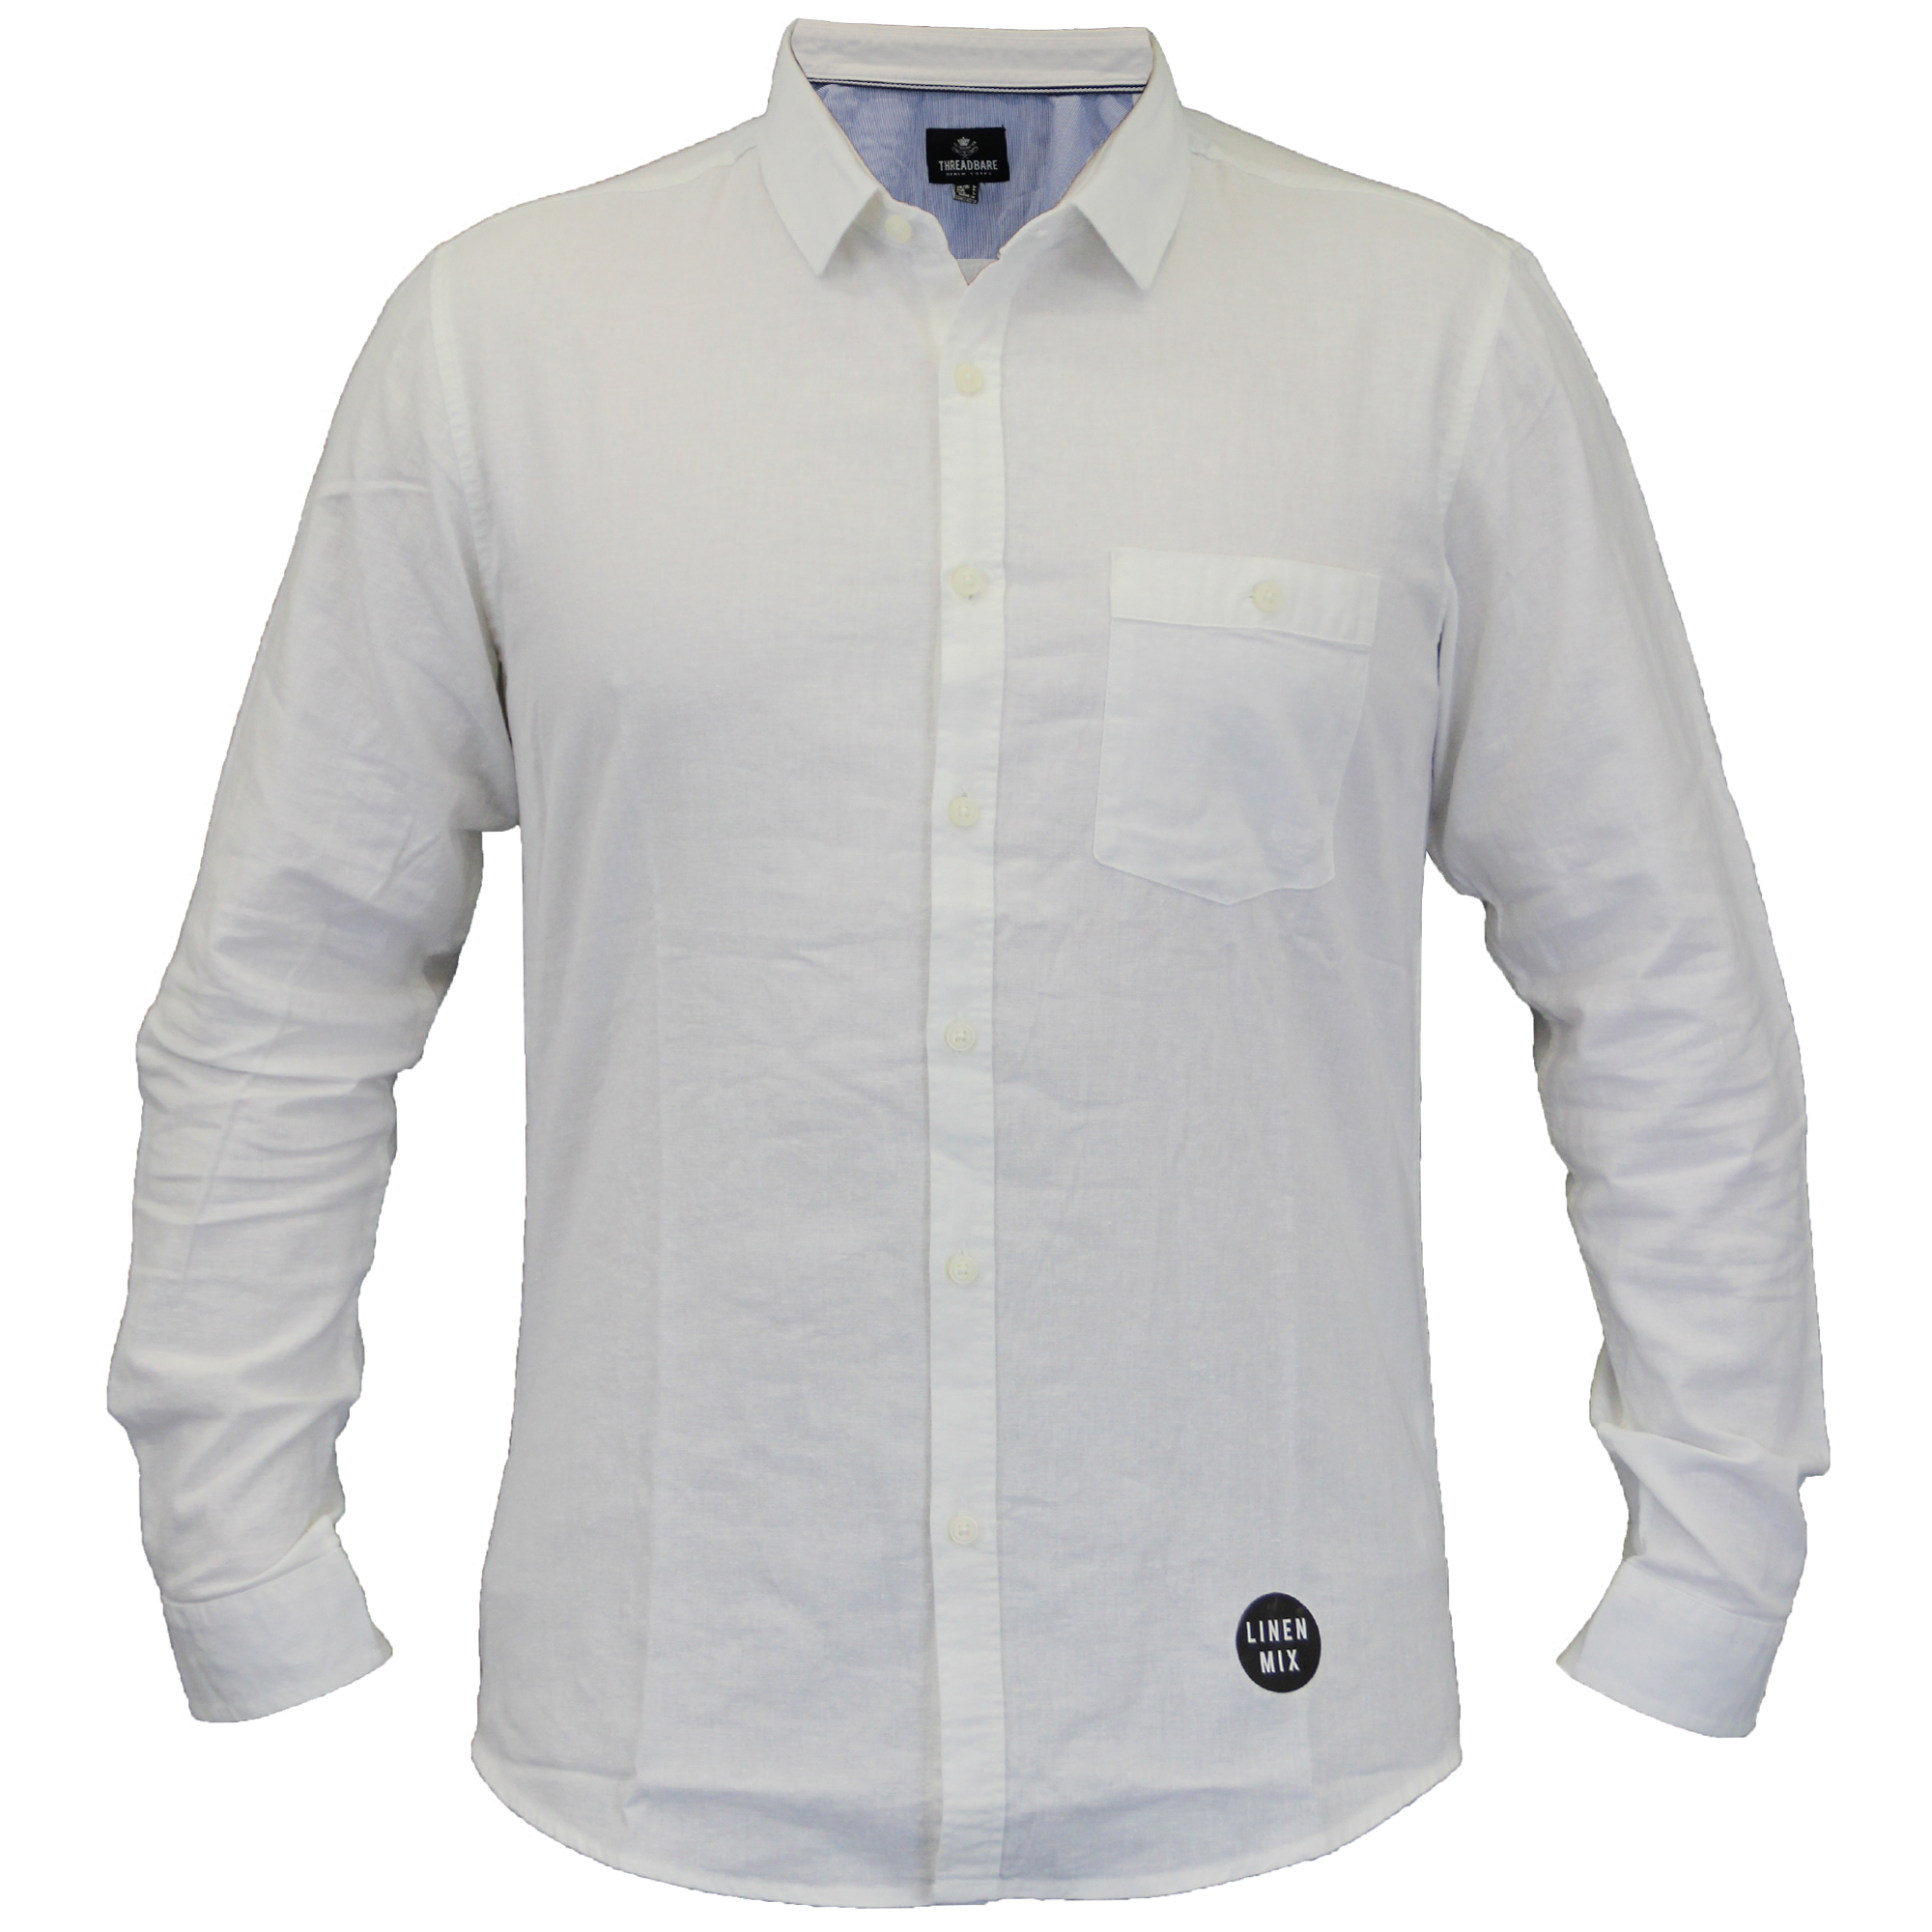 mens linen shirt threadbare collared long sleeved formal